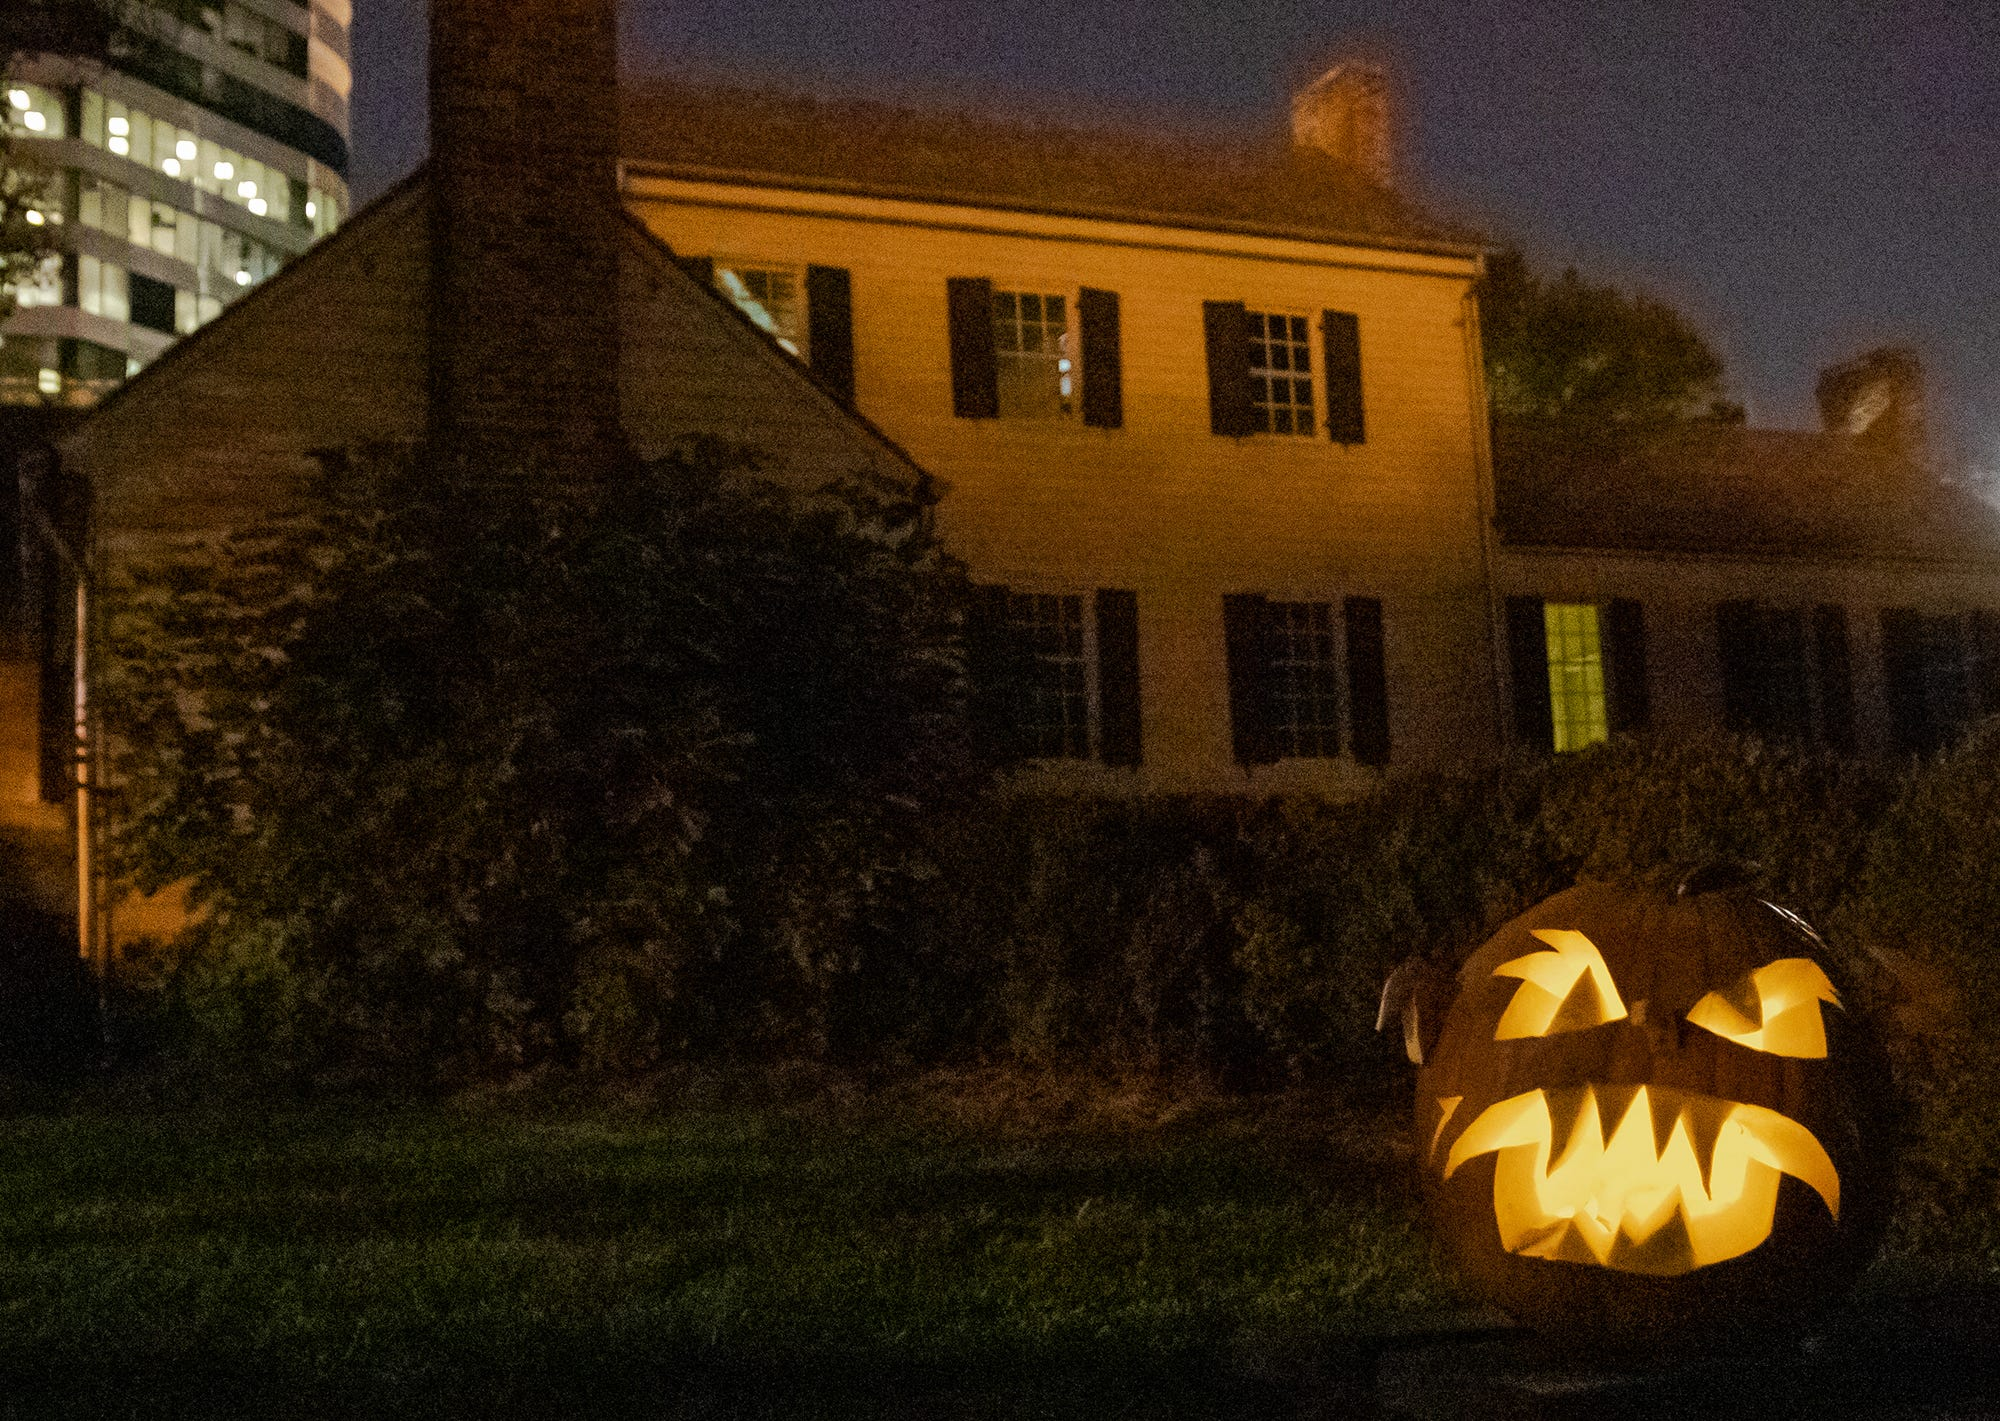 Tennessee funeral home's 'Gone To Rest' takes visitors on a hauntingly historic Halloween trip